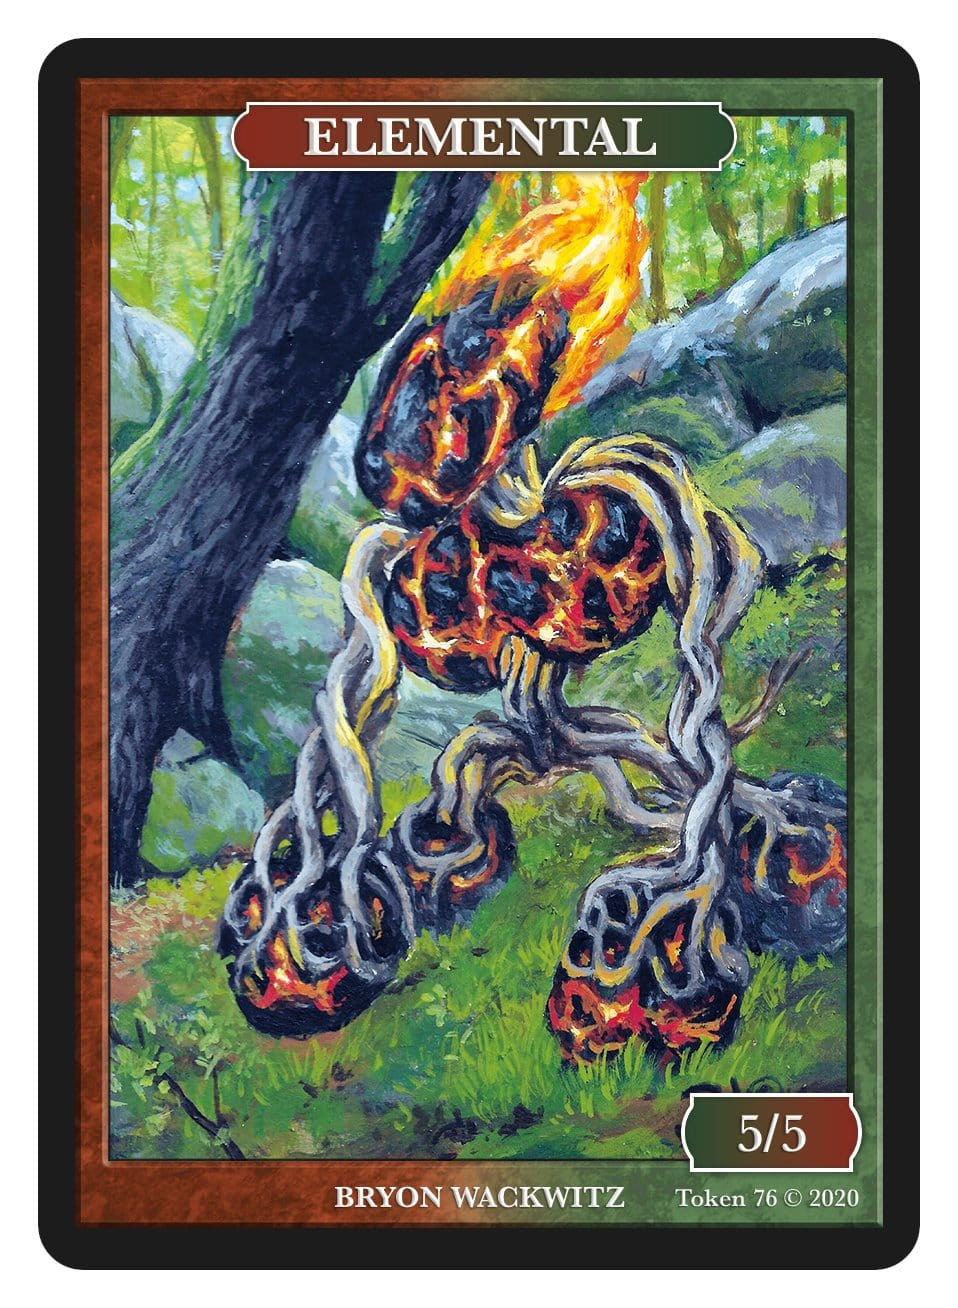 Elemental Token (5/5) by Bryon Wackwitz